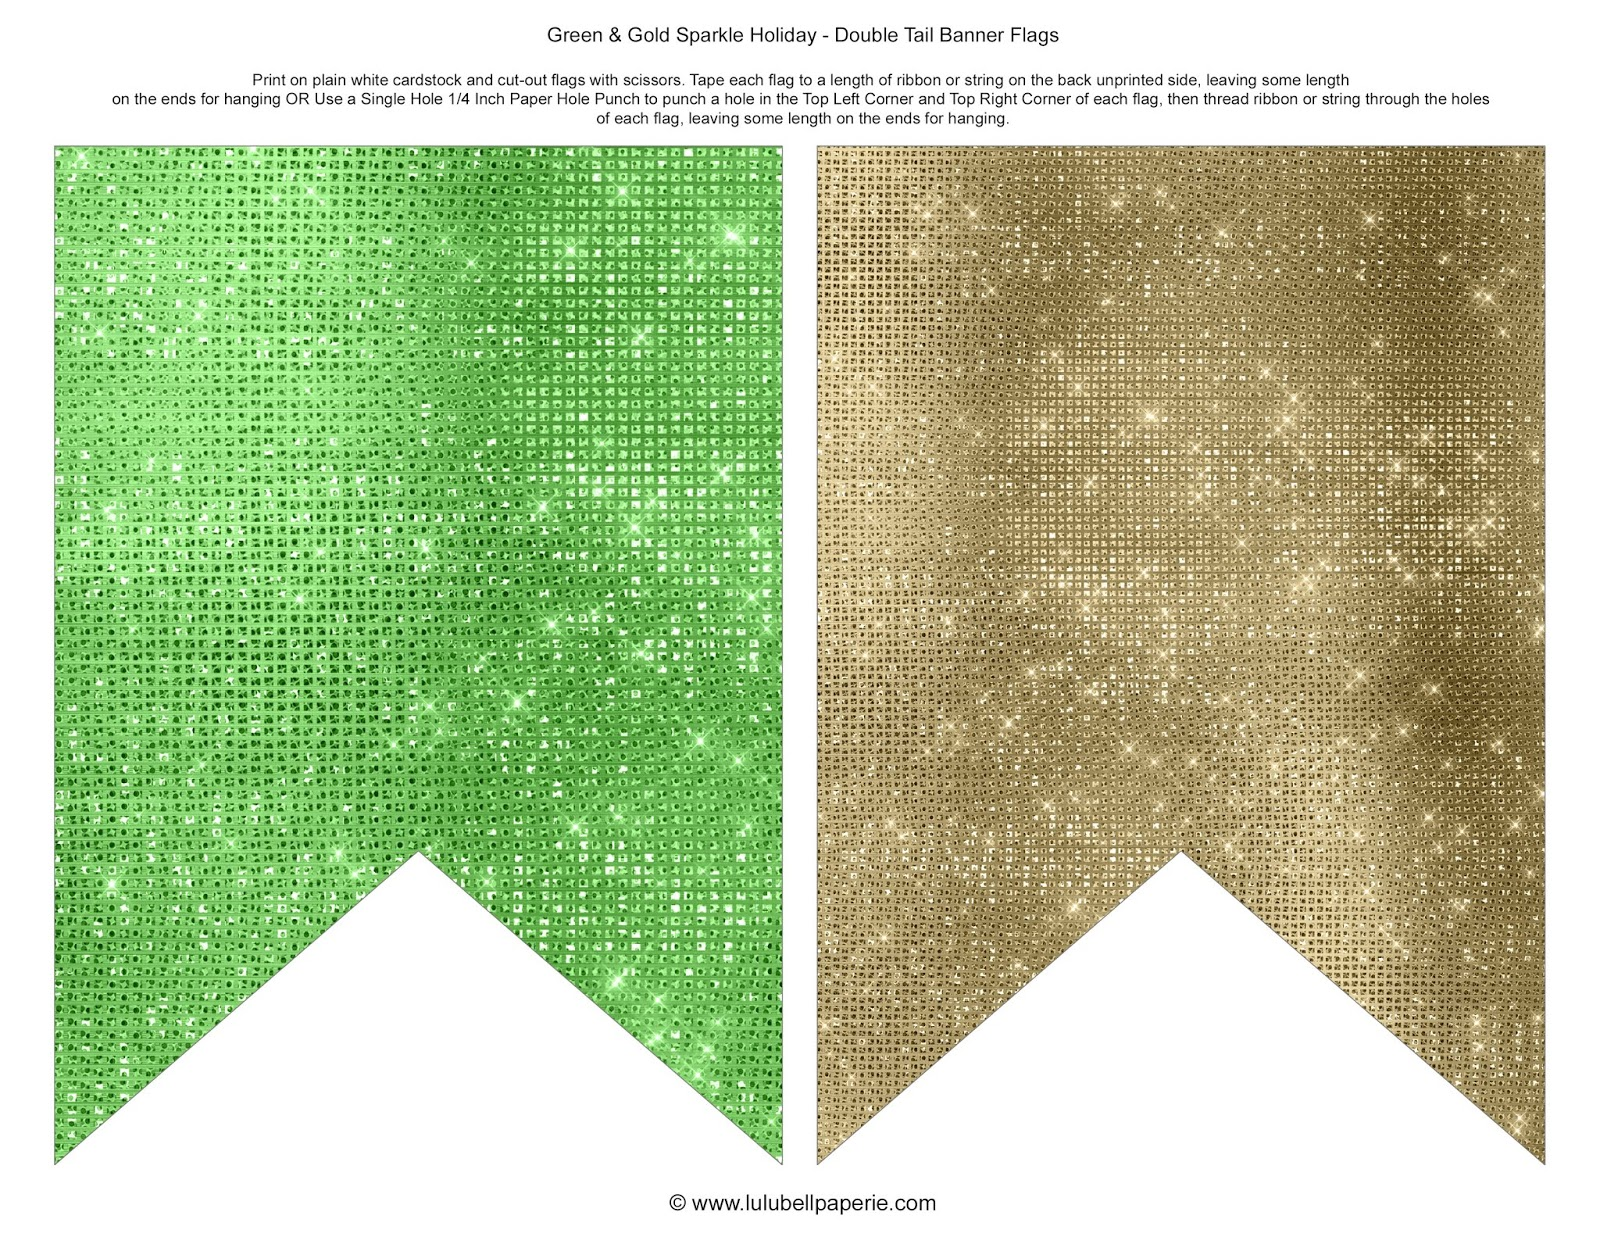 Free Christmas Holiday Bunting Banner Flags Printable - Gold and Green Sparkles